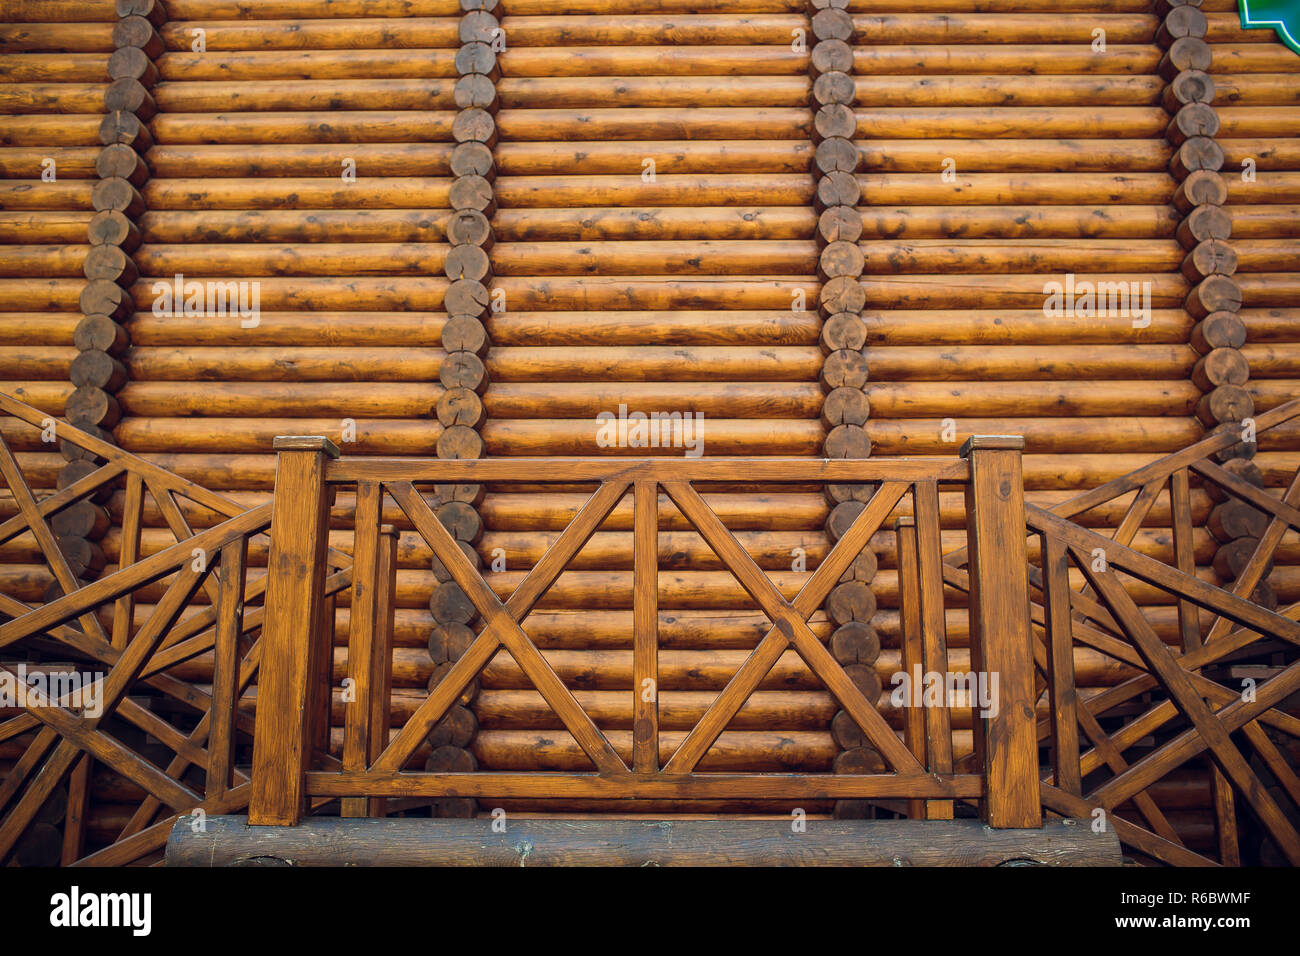 Log cabin ceiling and staircase from upper floor. - Stock Image